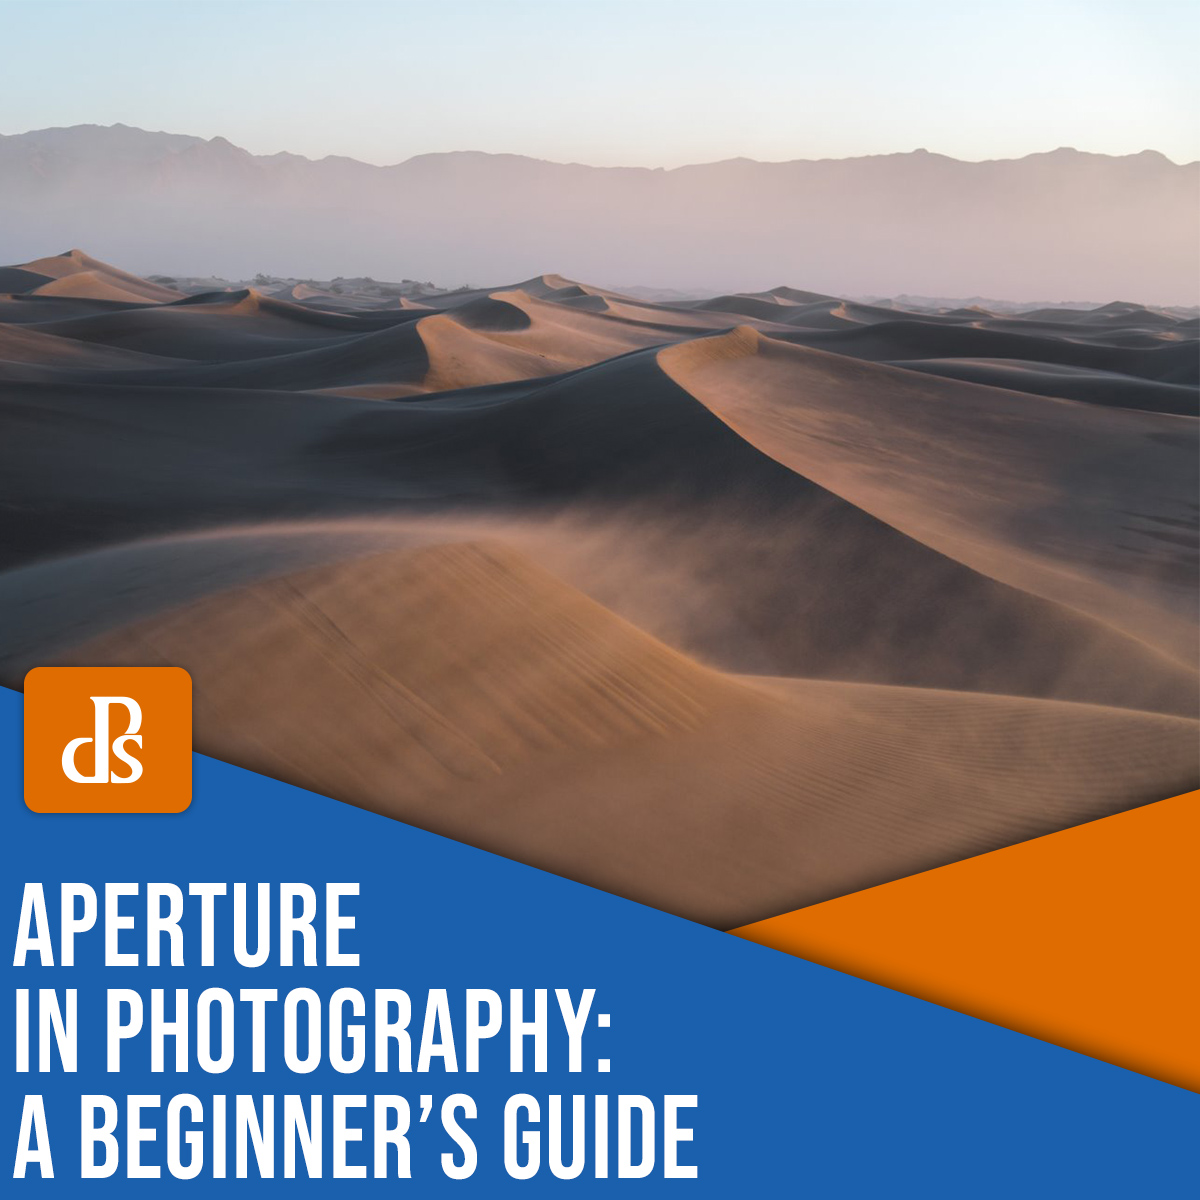 aperture in photography: a beginner's guide